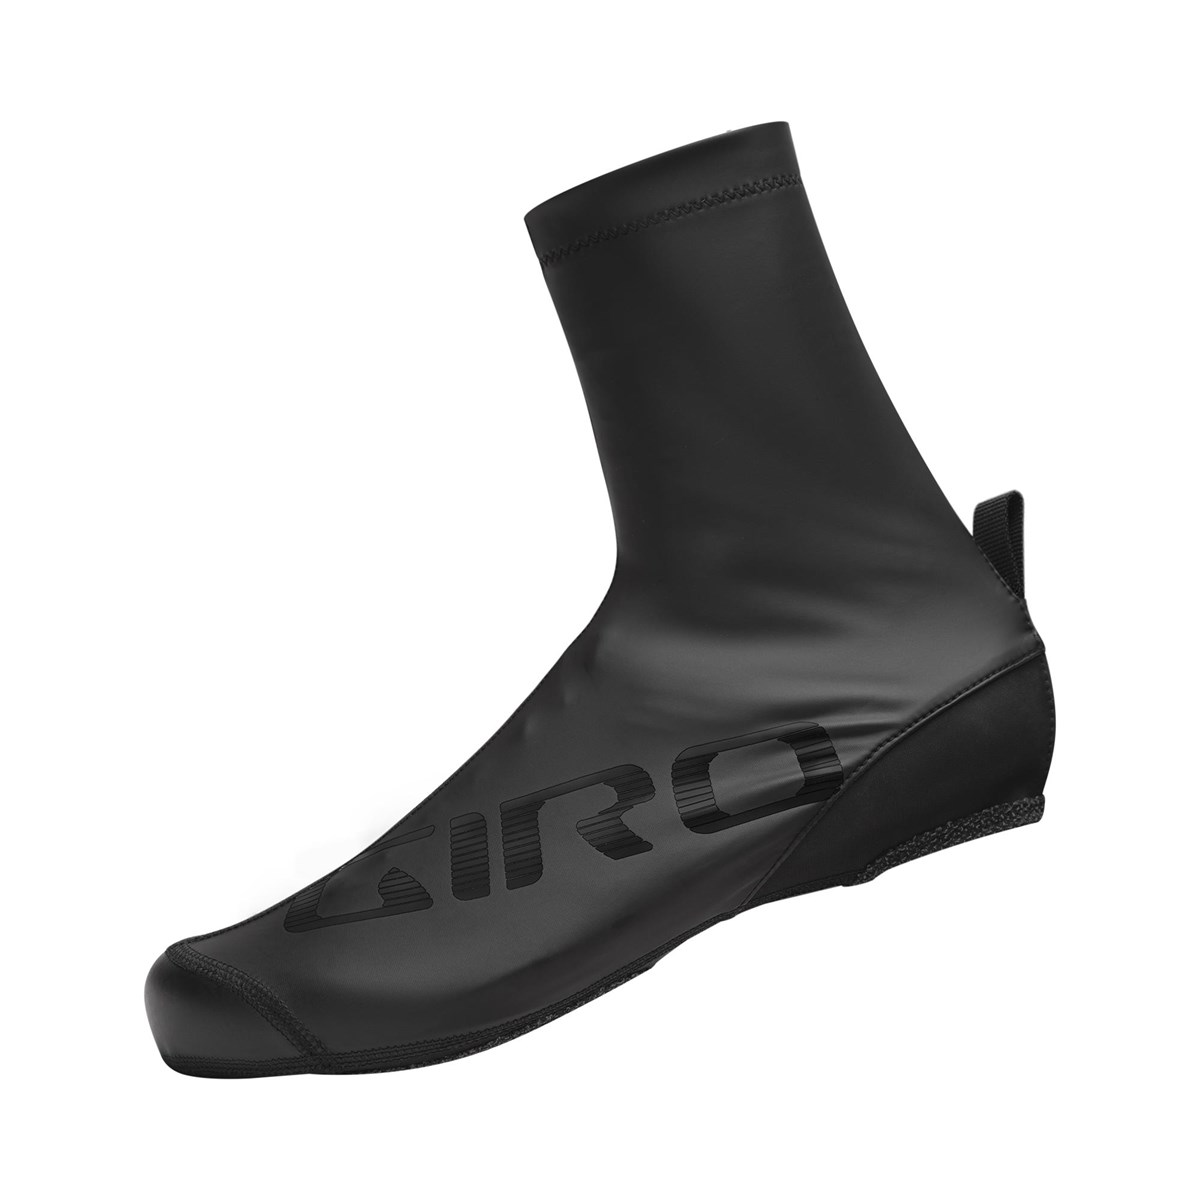 Proof 2.0 Insulated Protective Winter Shoe Covers